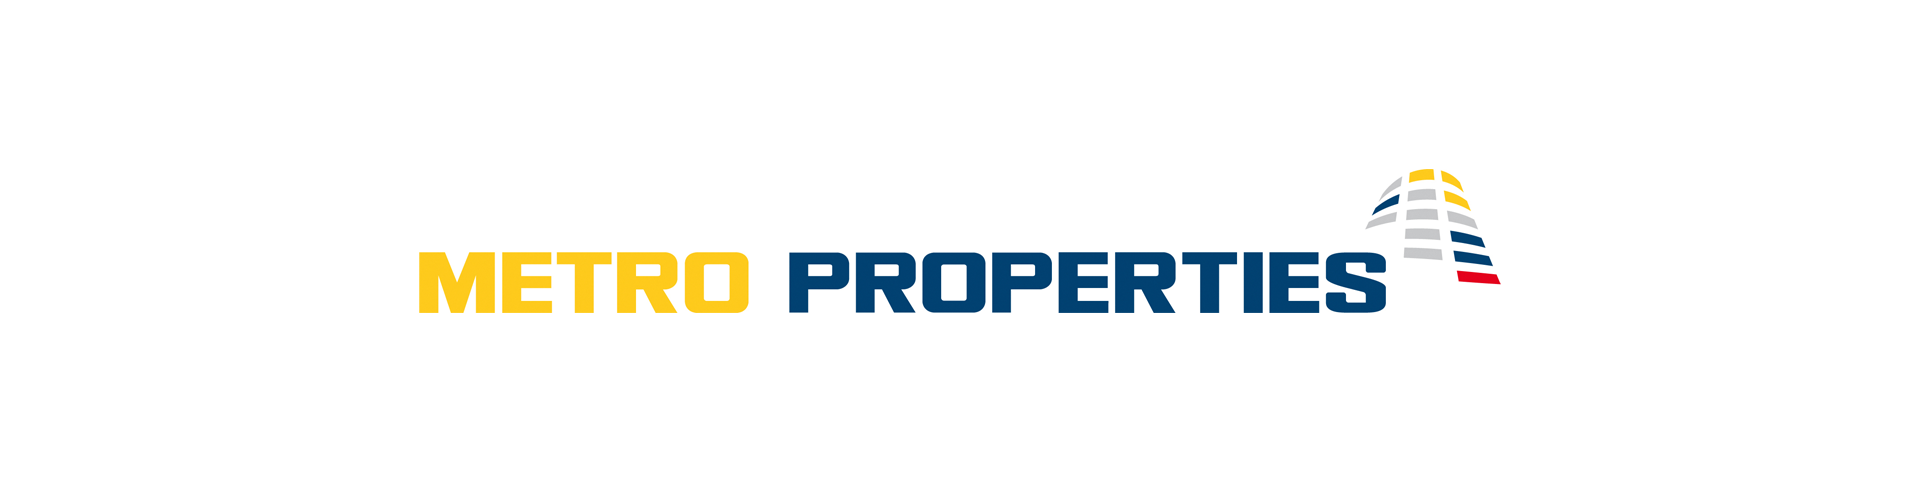 Header Metro-Properties